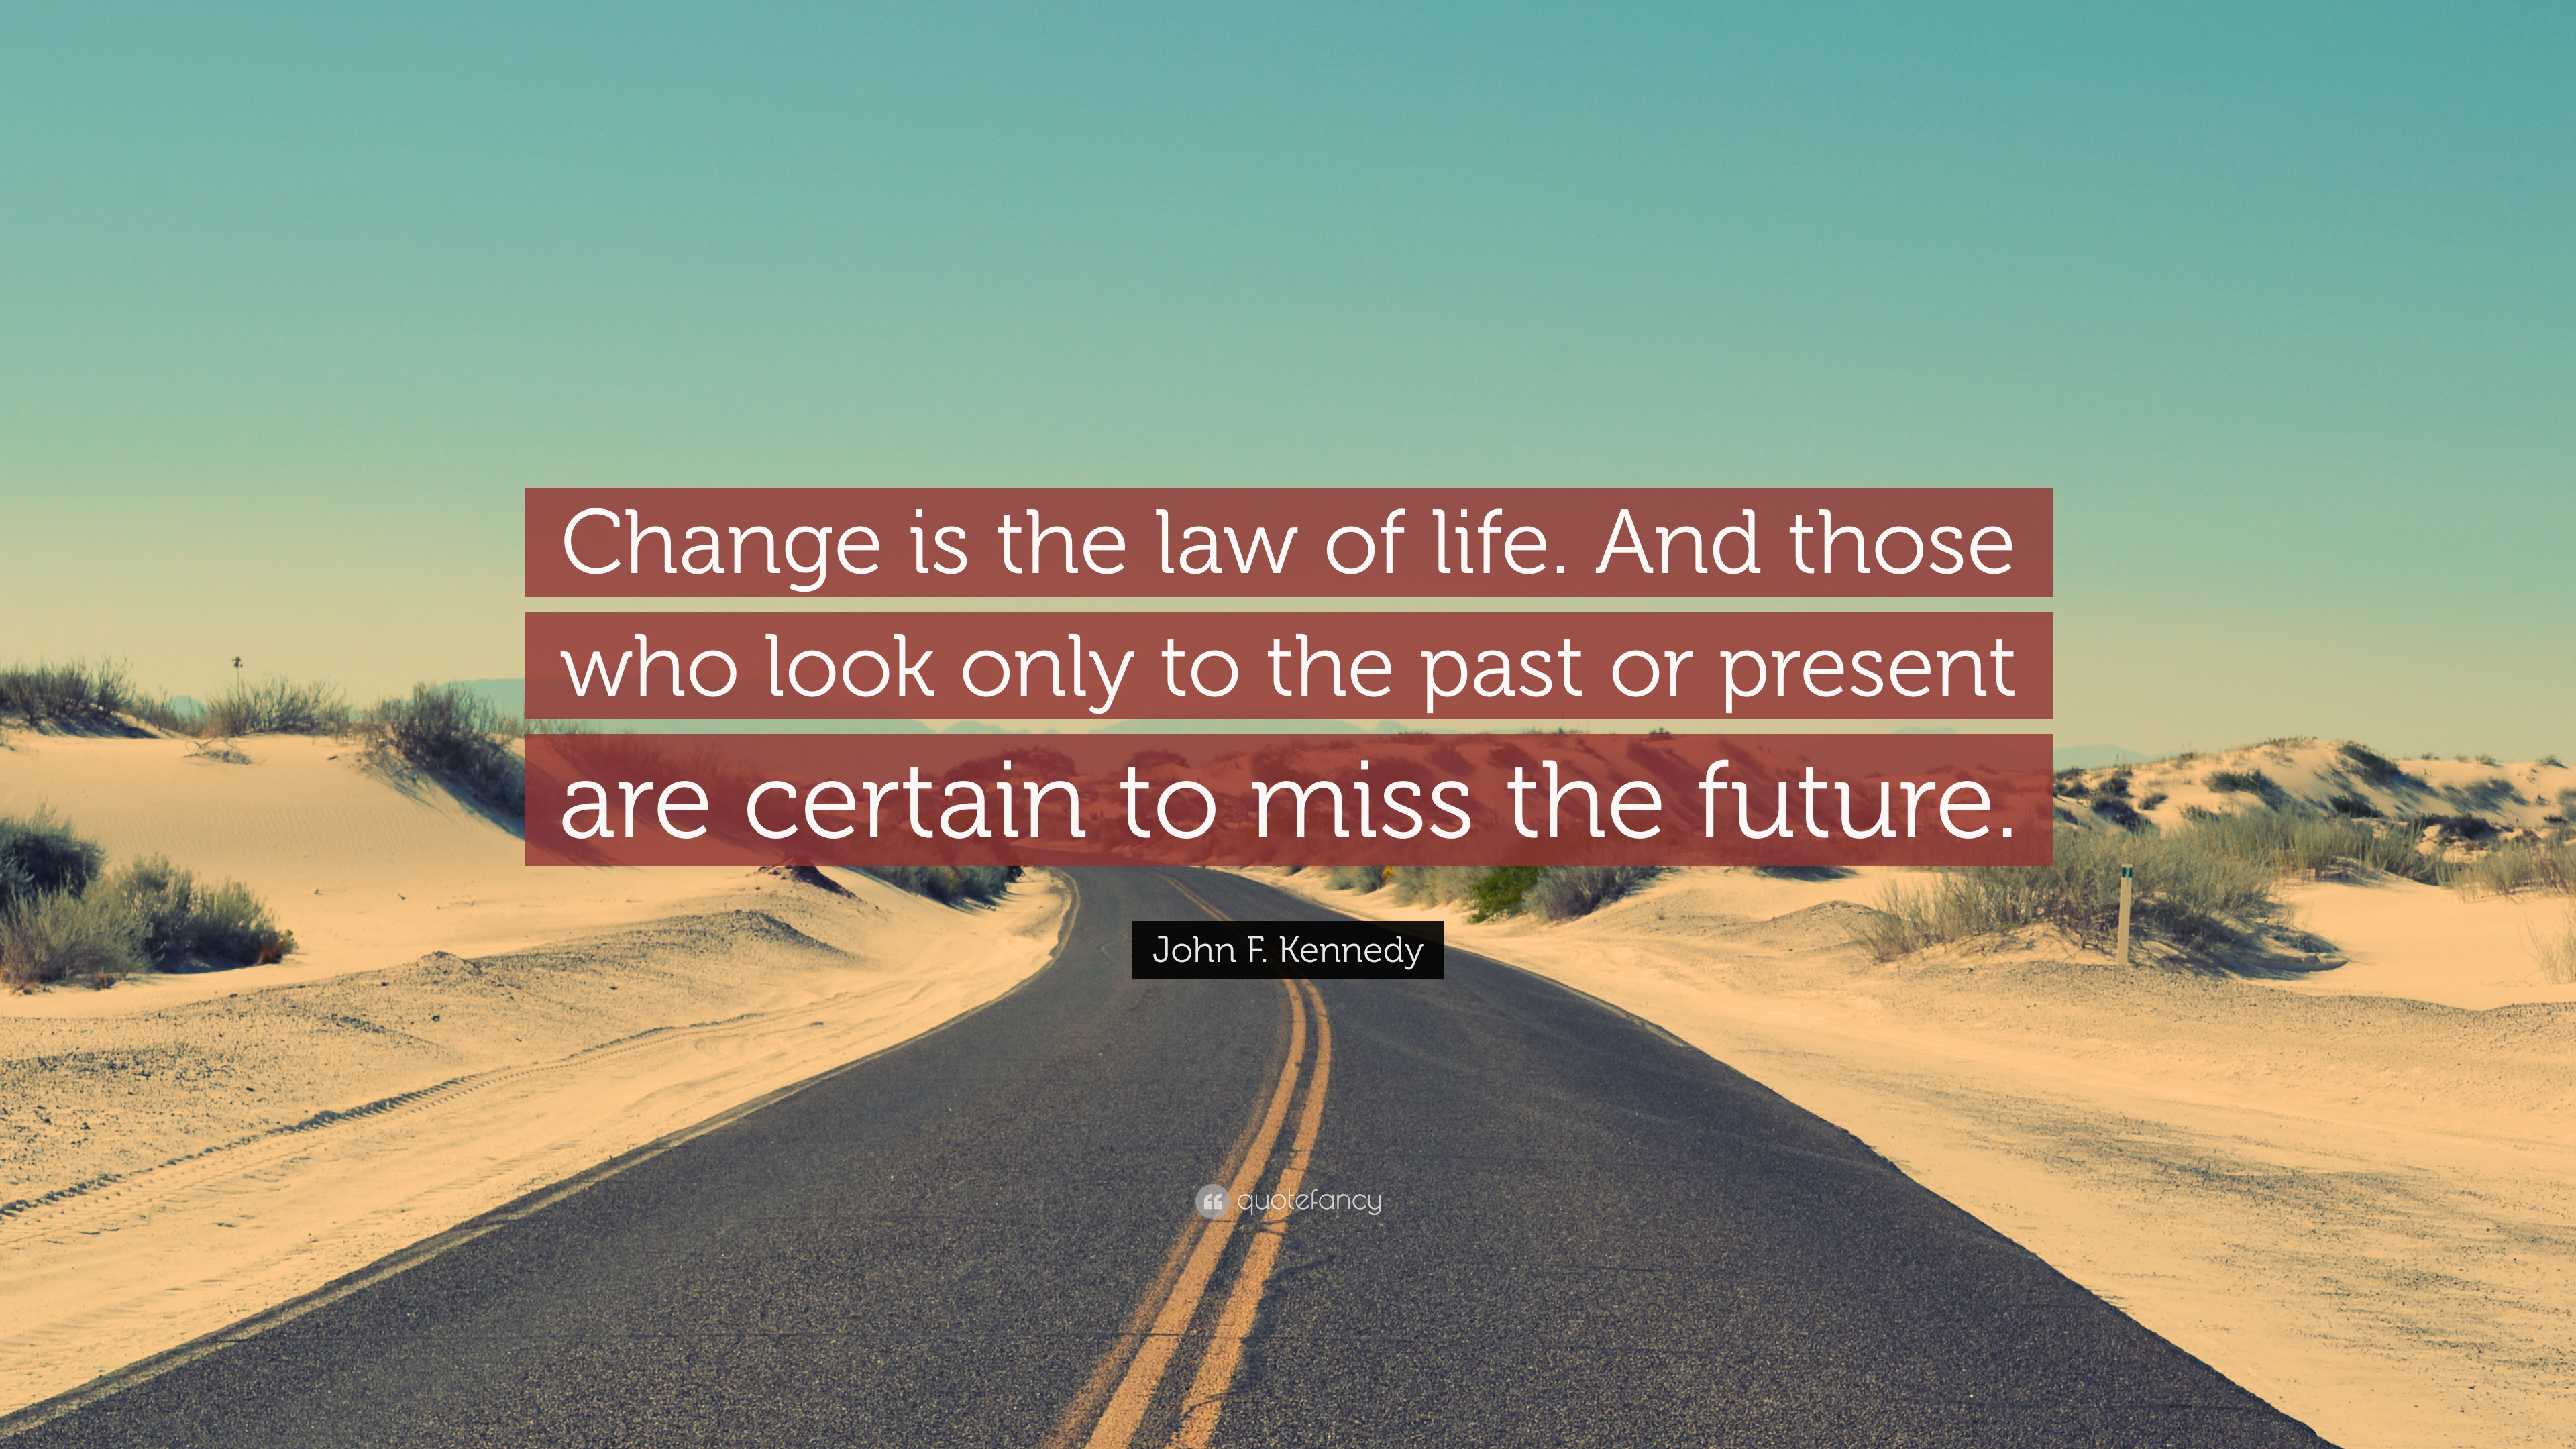 John F Kennedy Quote Change Is The Law Of Life And Those Who